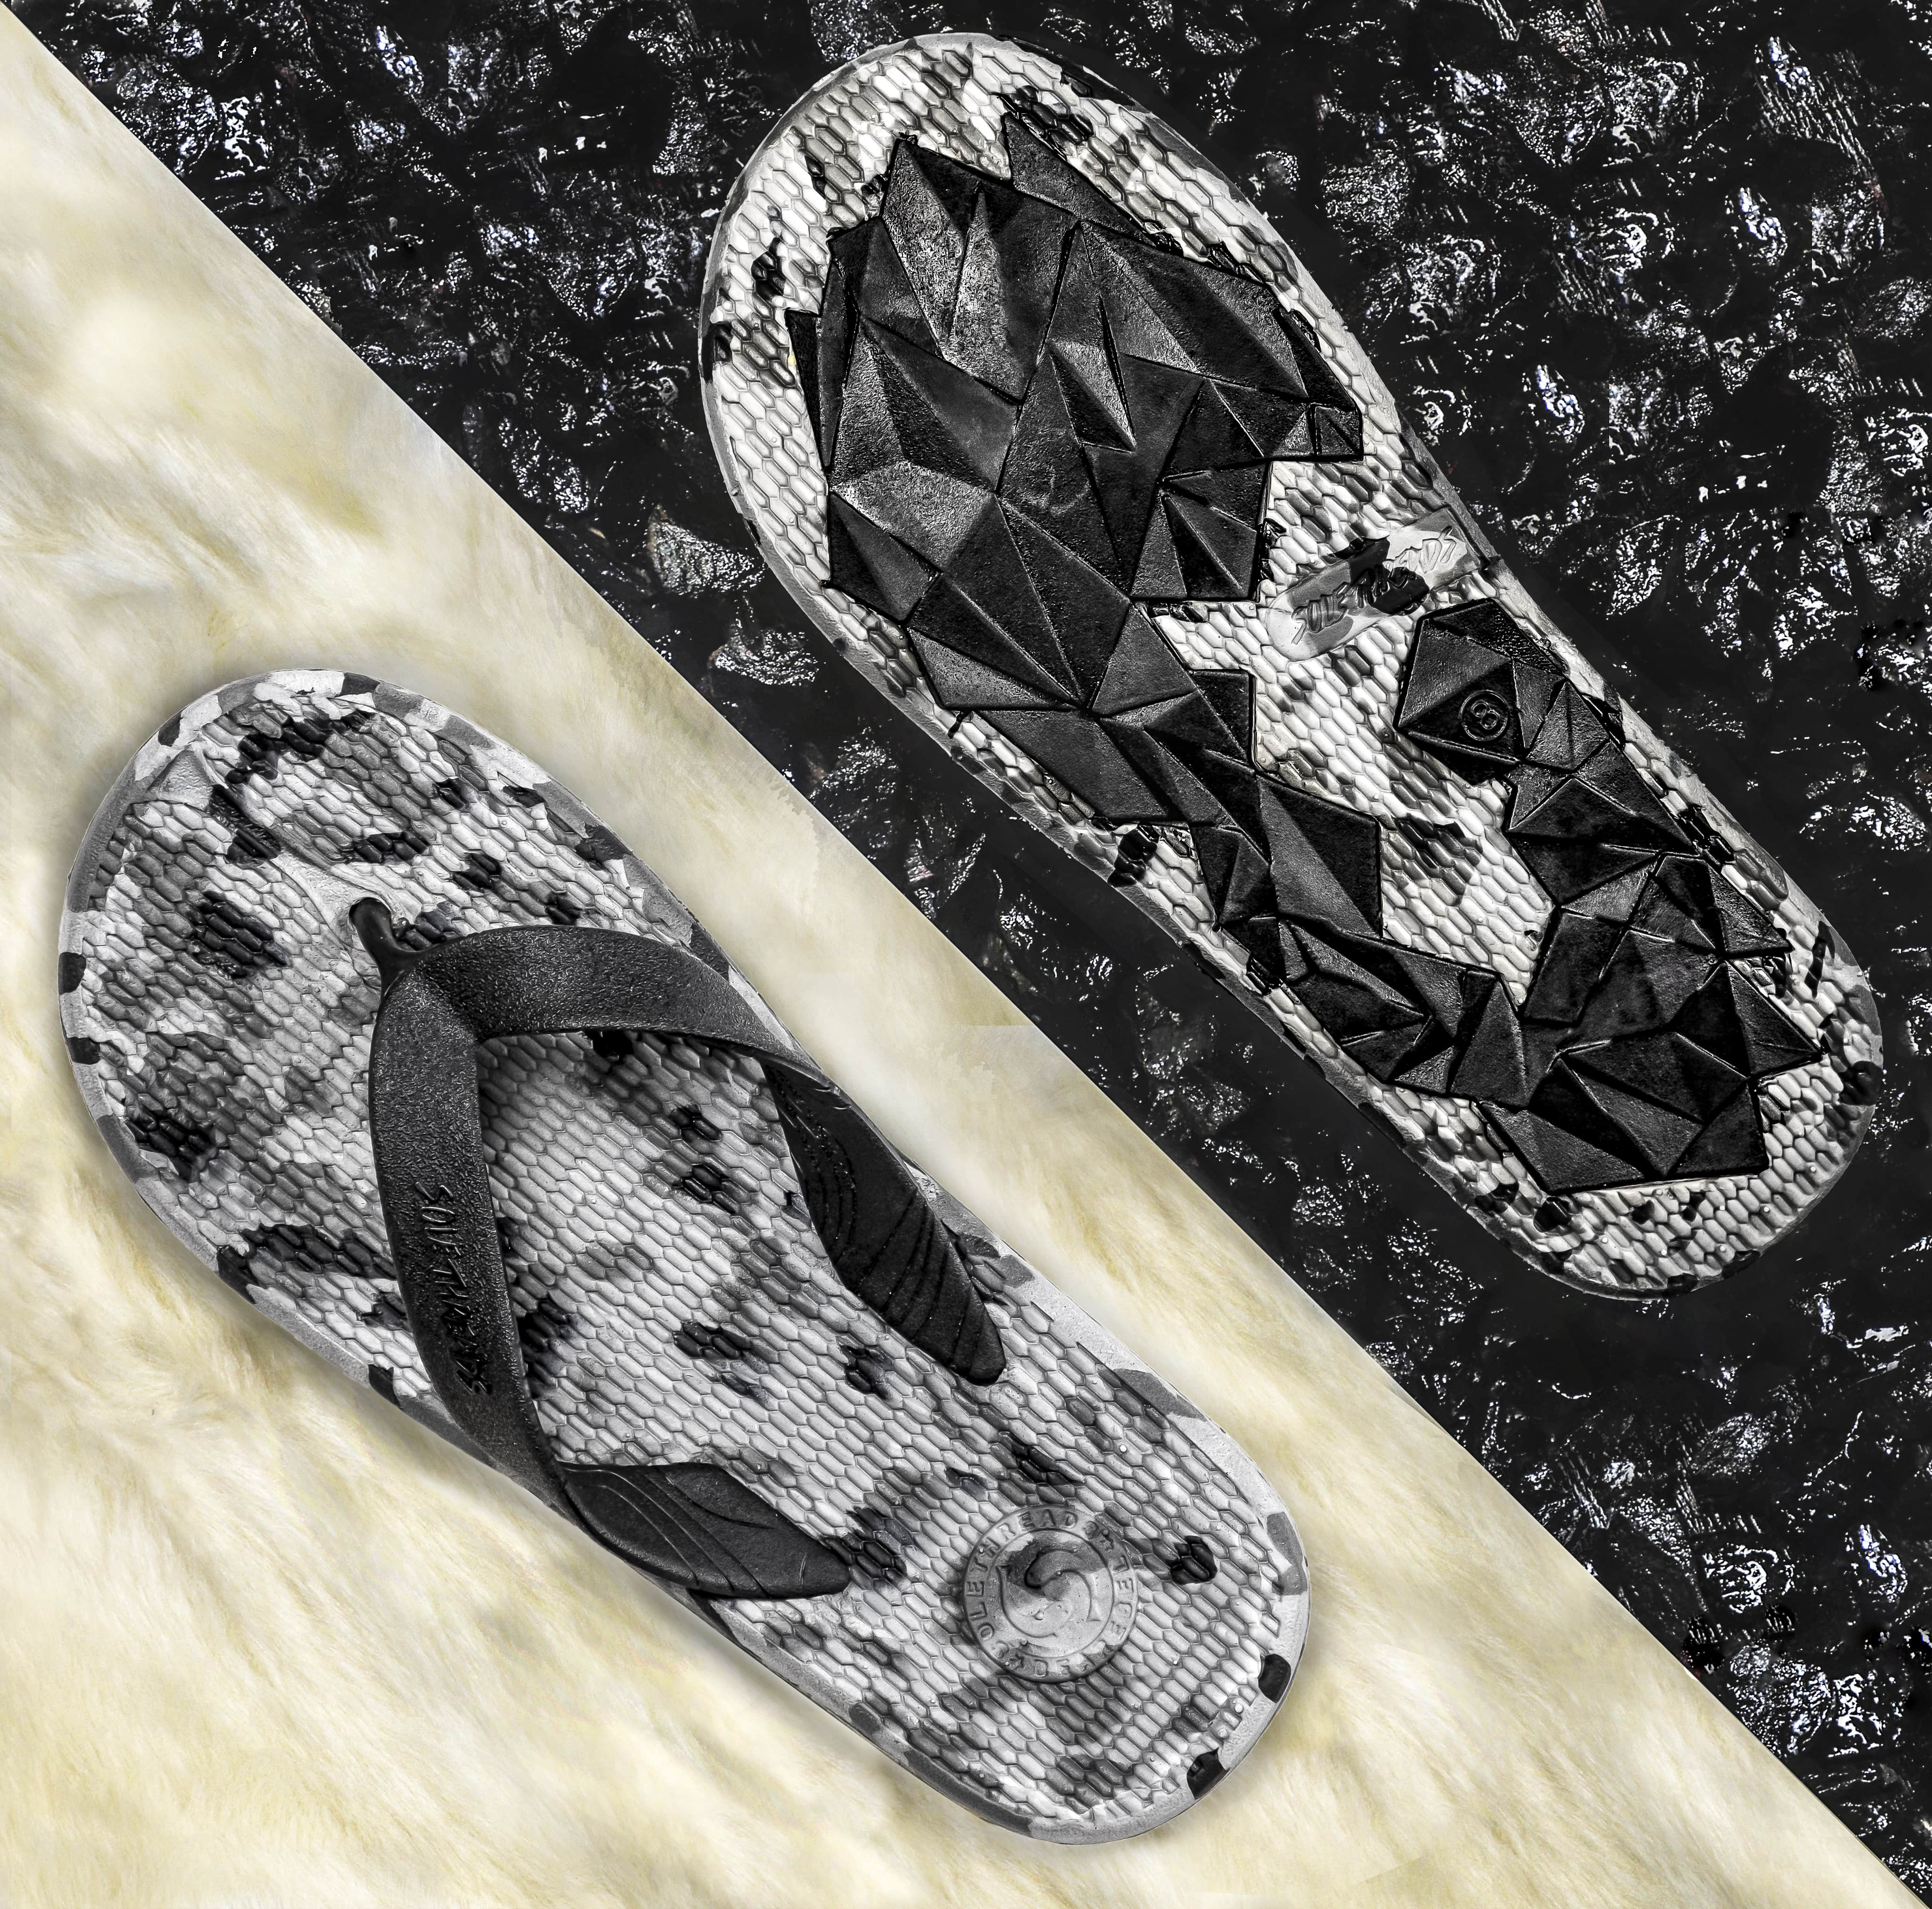 Everlast Superfoam Footbed With Antimicrobial Property